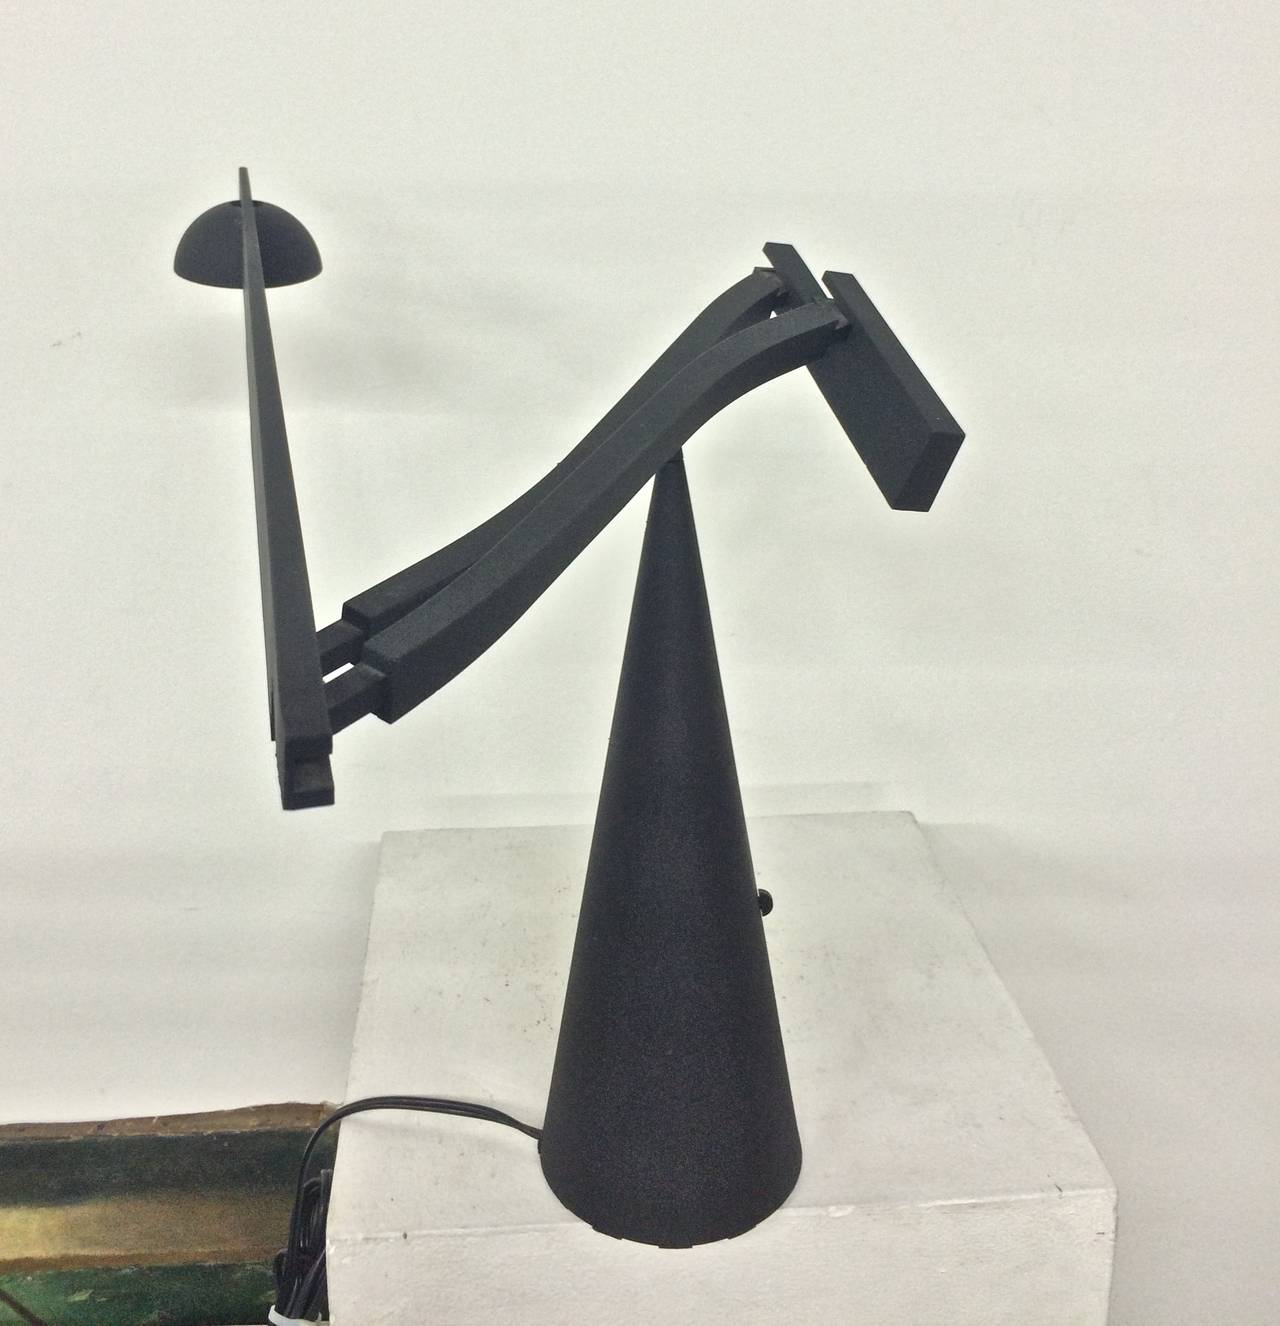 High Tech Lamp Colombo And Barbaglia Italian High Tech Table Lamp At 1stdibs